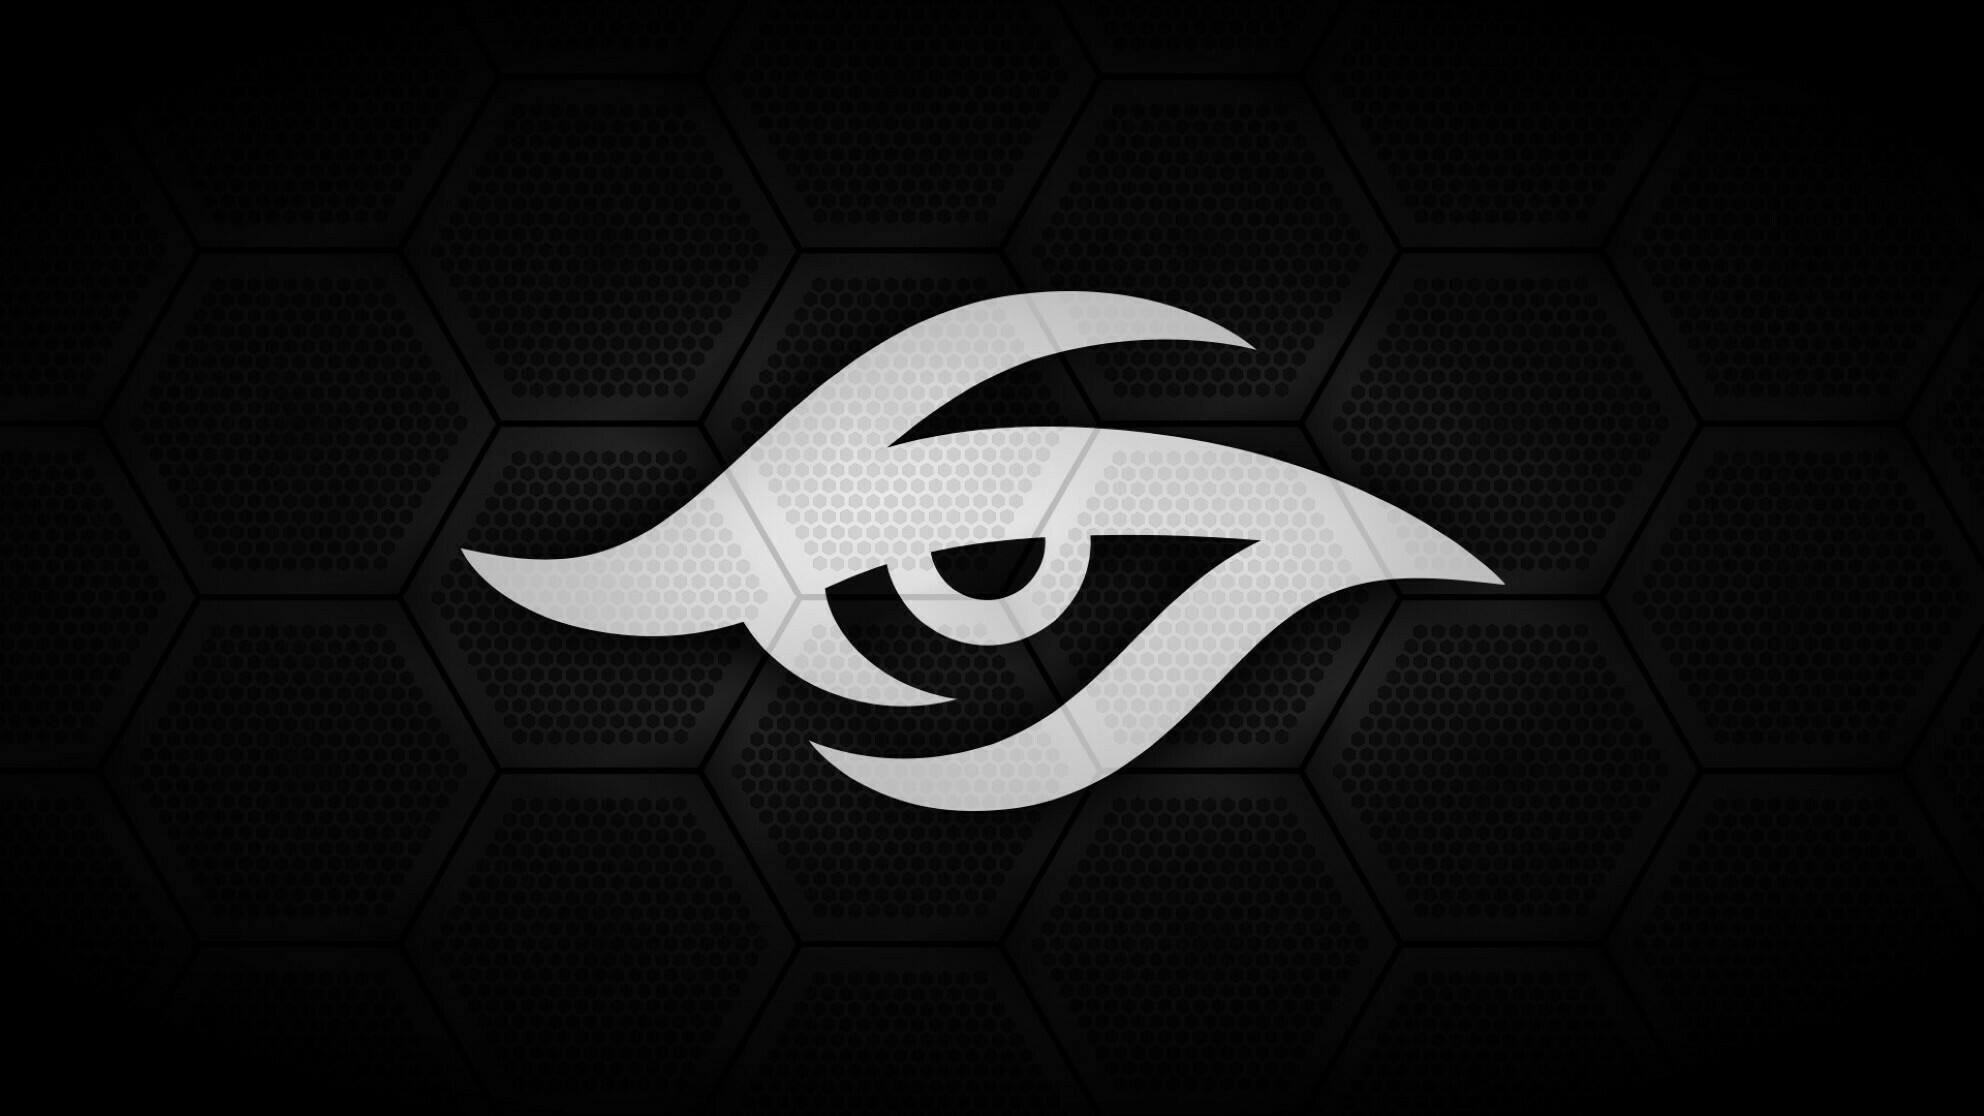 Team Secret returns to Counter-Strike with m1x signing